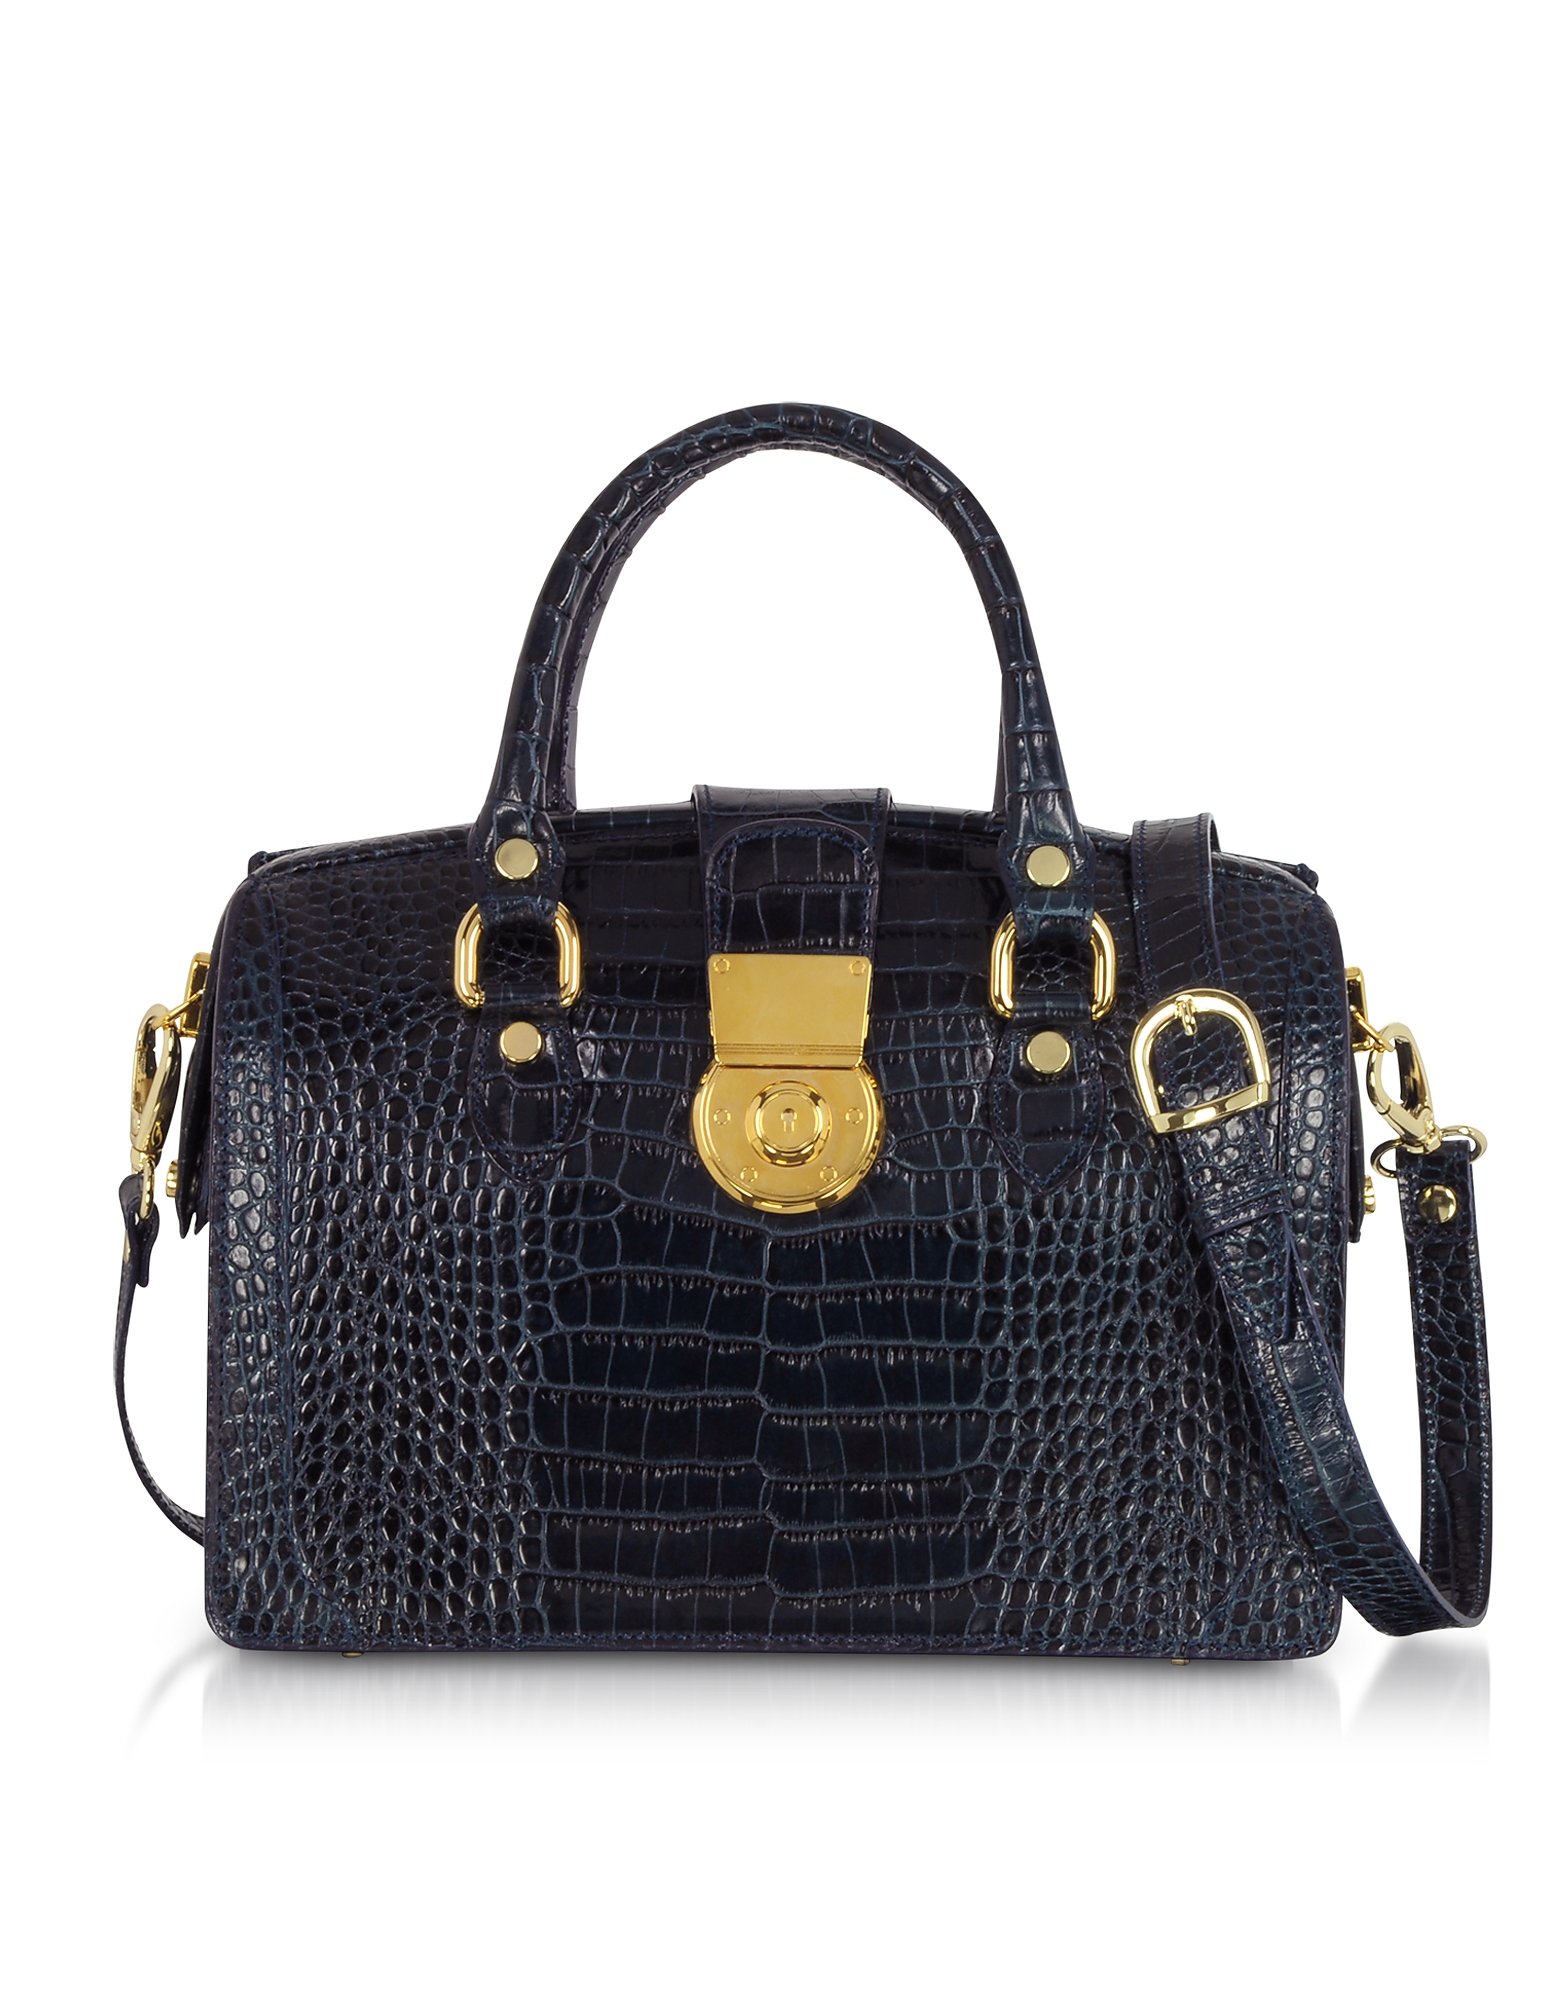 Blue Croco-stamped Italian Leather Doctor-style Handbag